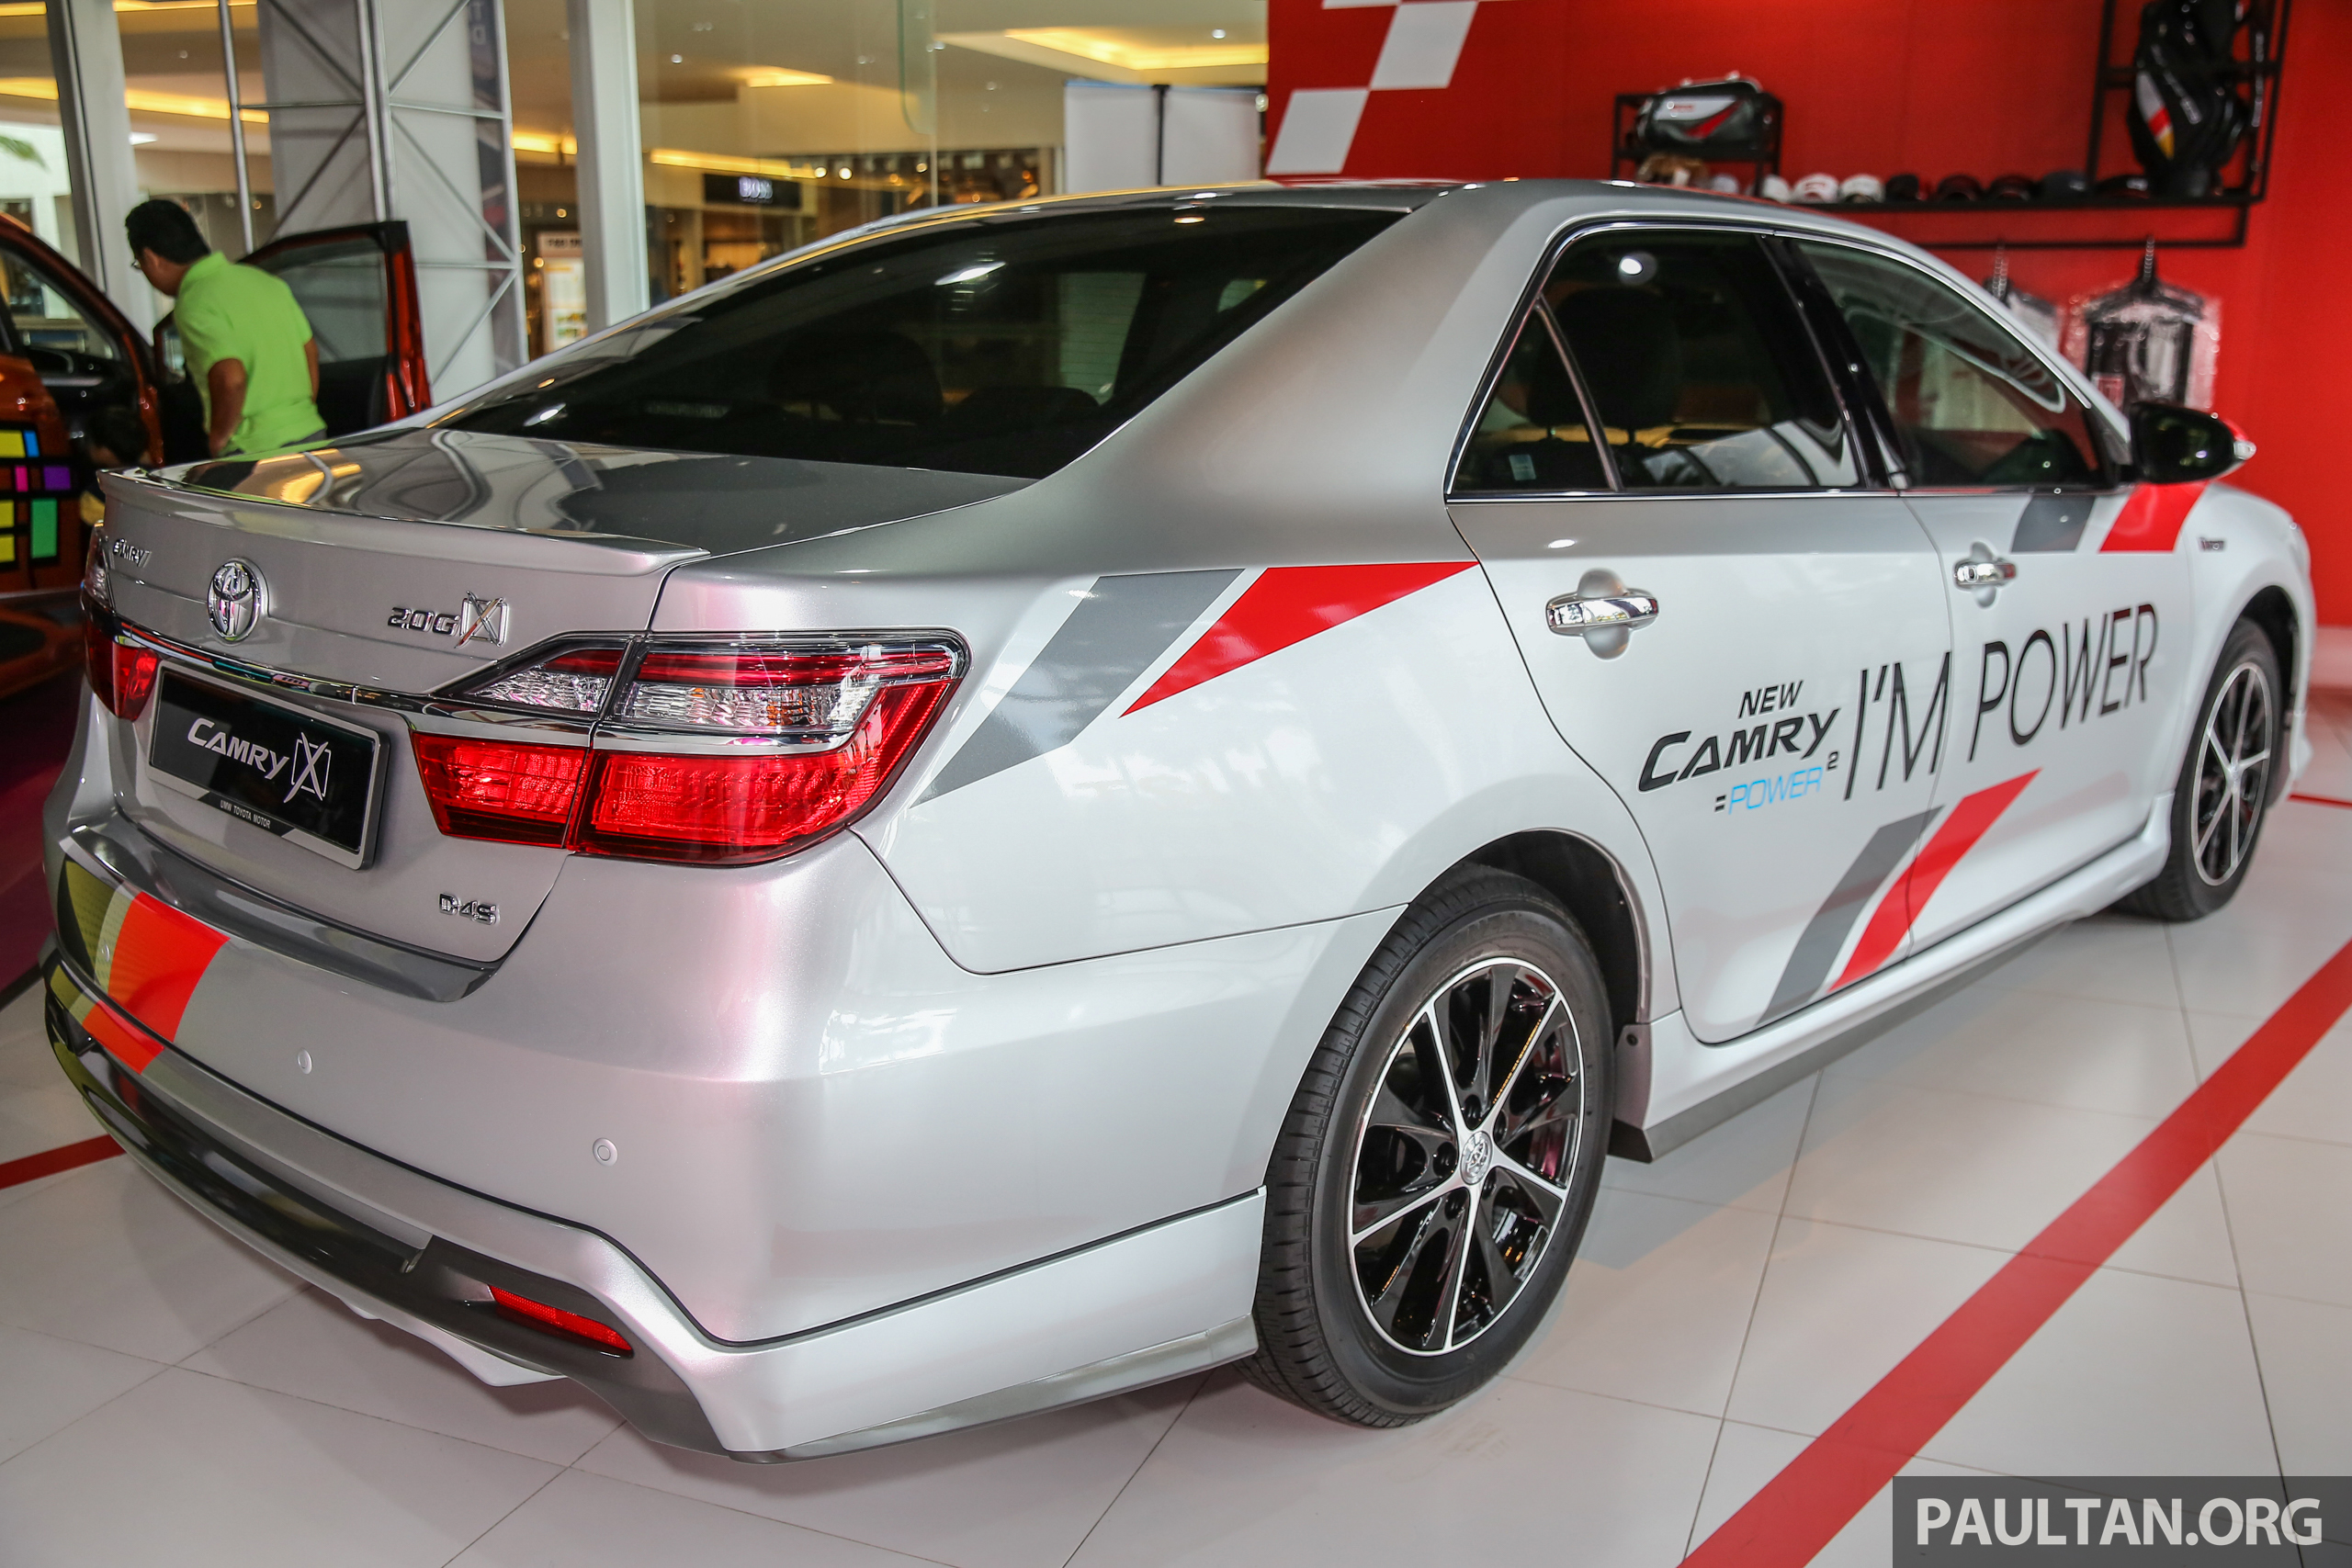 Gallery New Toyota Camry 2 0g X Shown At Mitsui Image 584948